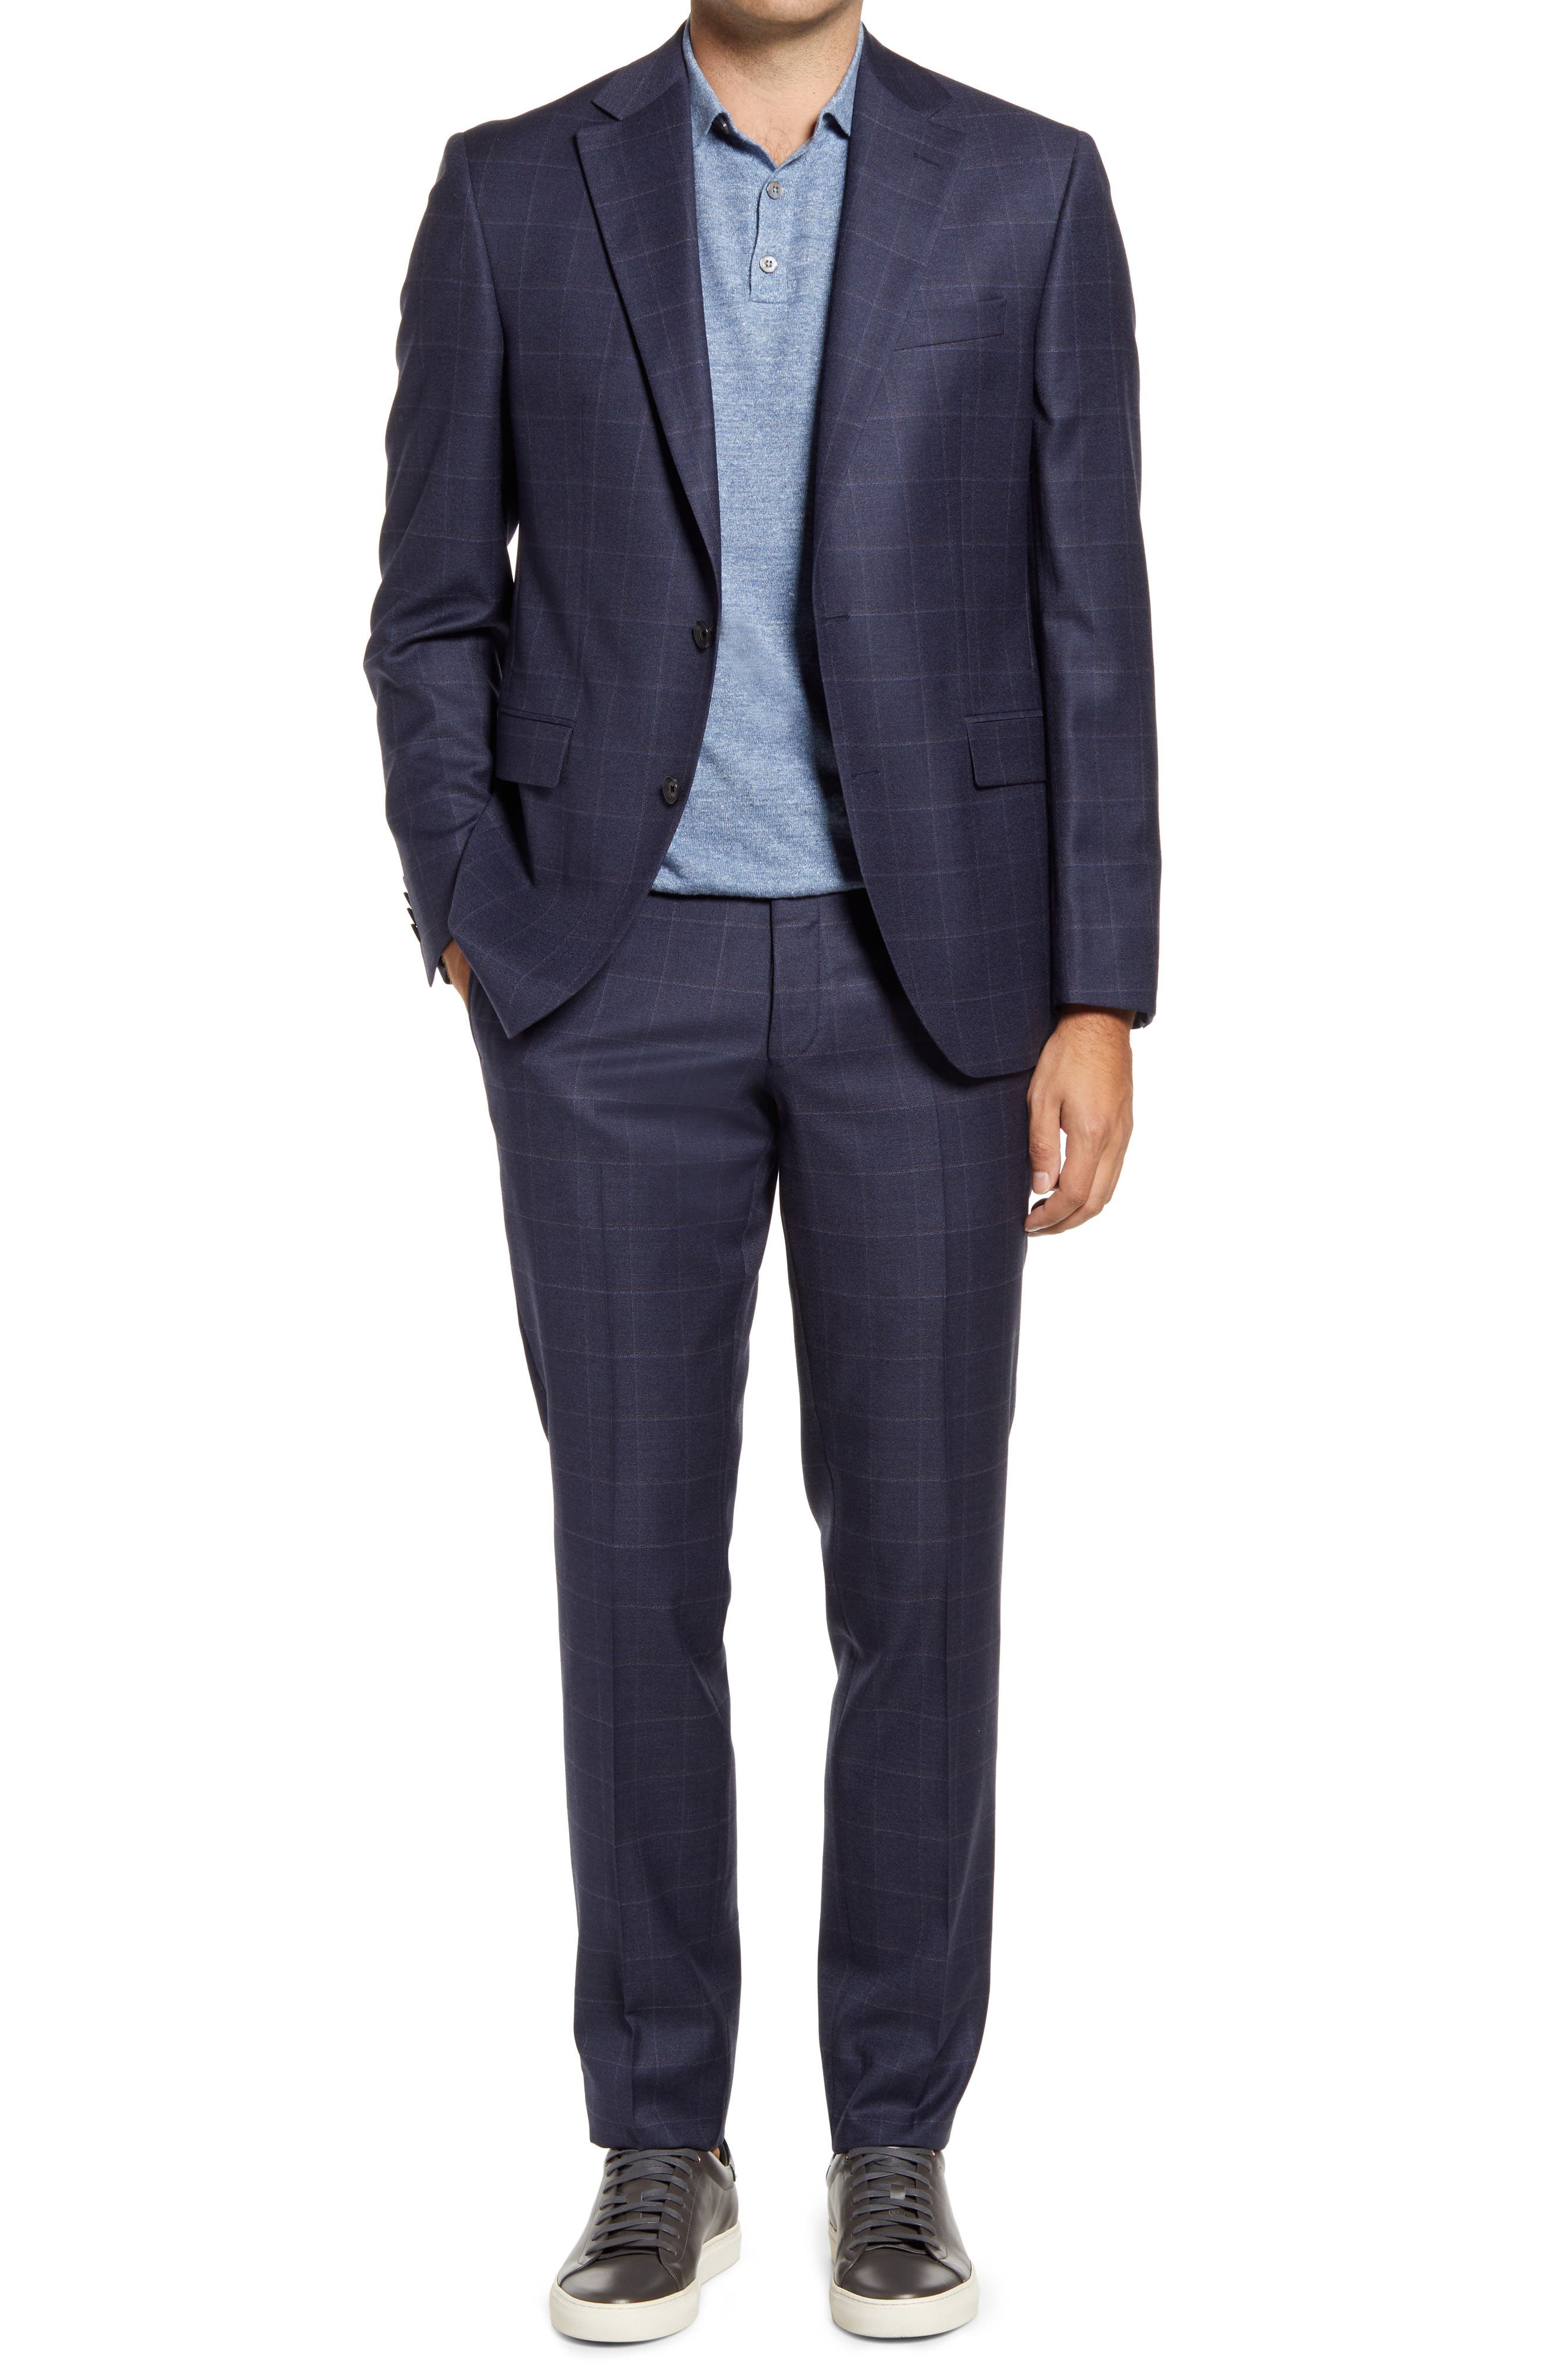 Esprit Contemporary Fit Navy Windowpane Check Wool Suit